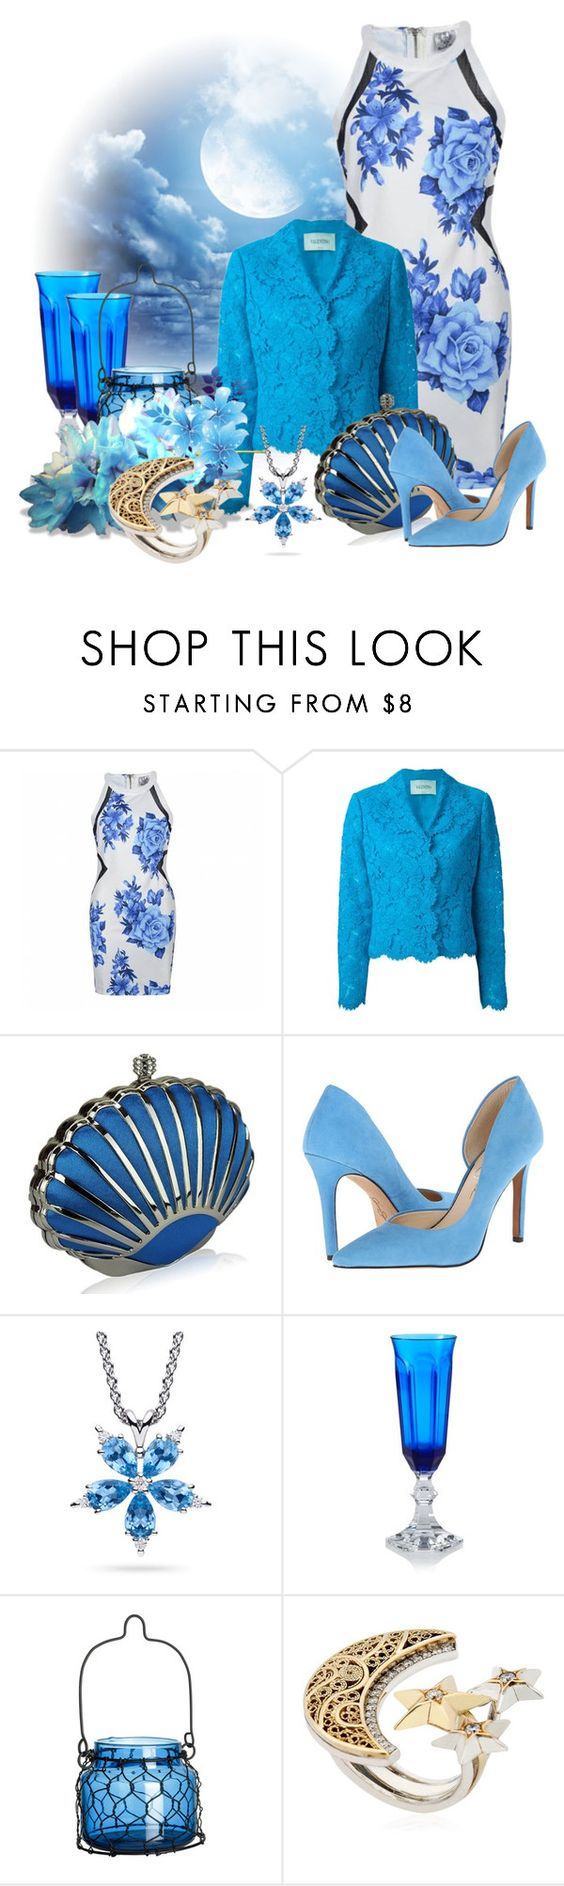 """""""Clear Night Sky"""" by leptismagna ❤ liked on Polyvore featuring Ally Fashion, Valentino, Jessica Simpson, Paul Morelli, Mario Luca Giusti, H&M, AZZA FAHMY, SkyBlue, lace and Night"""